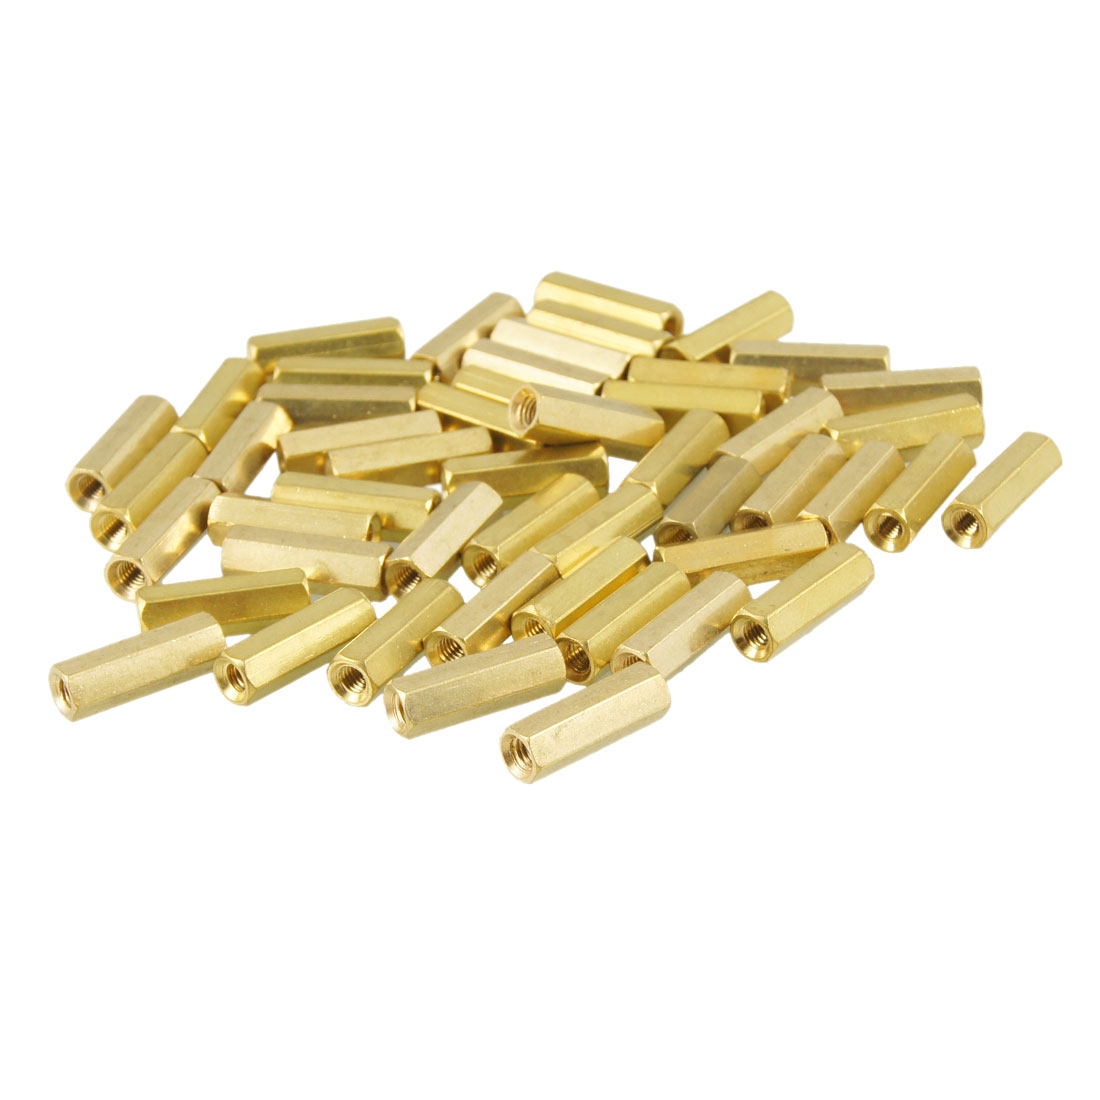 50 Pcs M3X15mm Gold Tone Hexagonal Female Thread Standoff Spacers